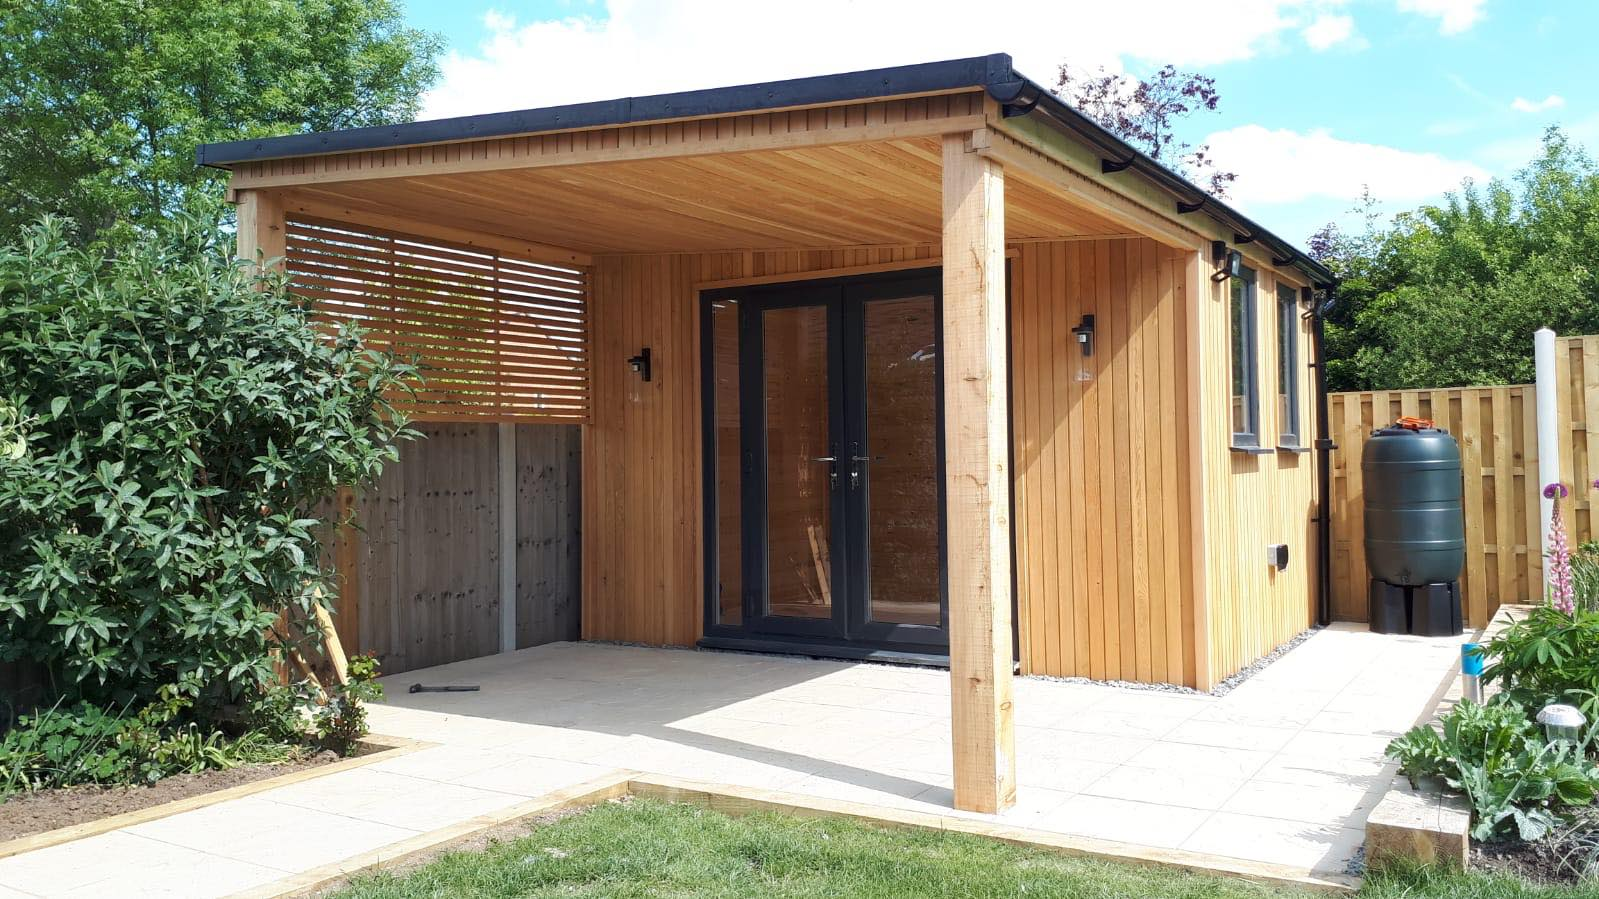 //Brand-new luxurious garden rooms; designed, delivered and installed by Spolding and Sons.